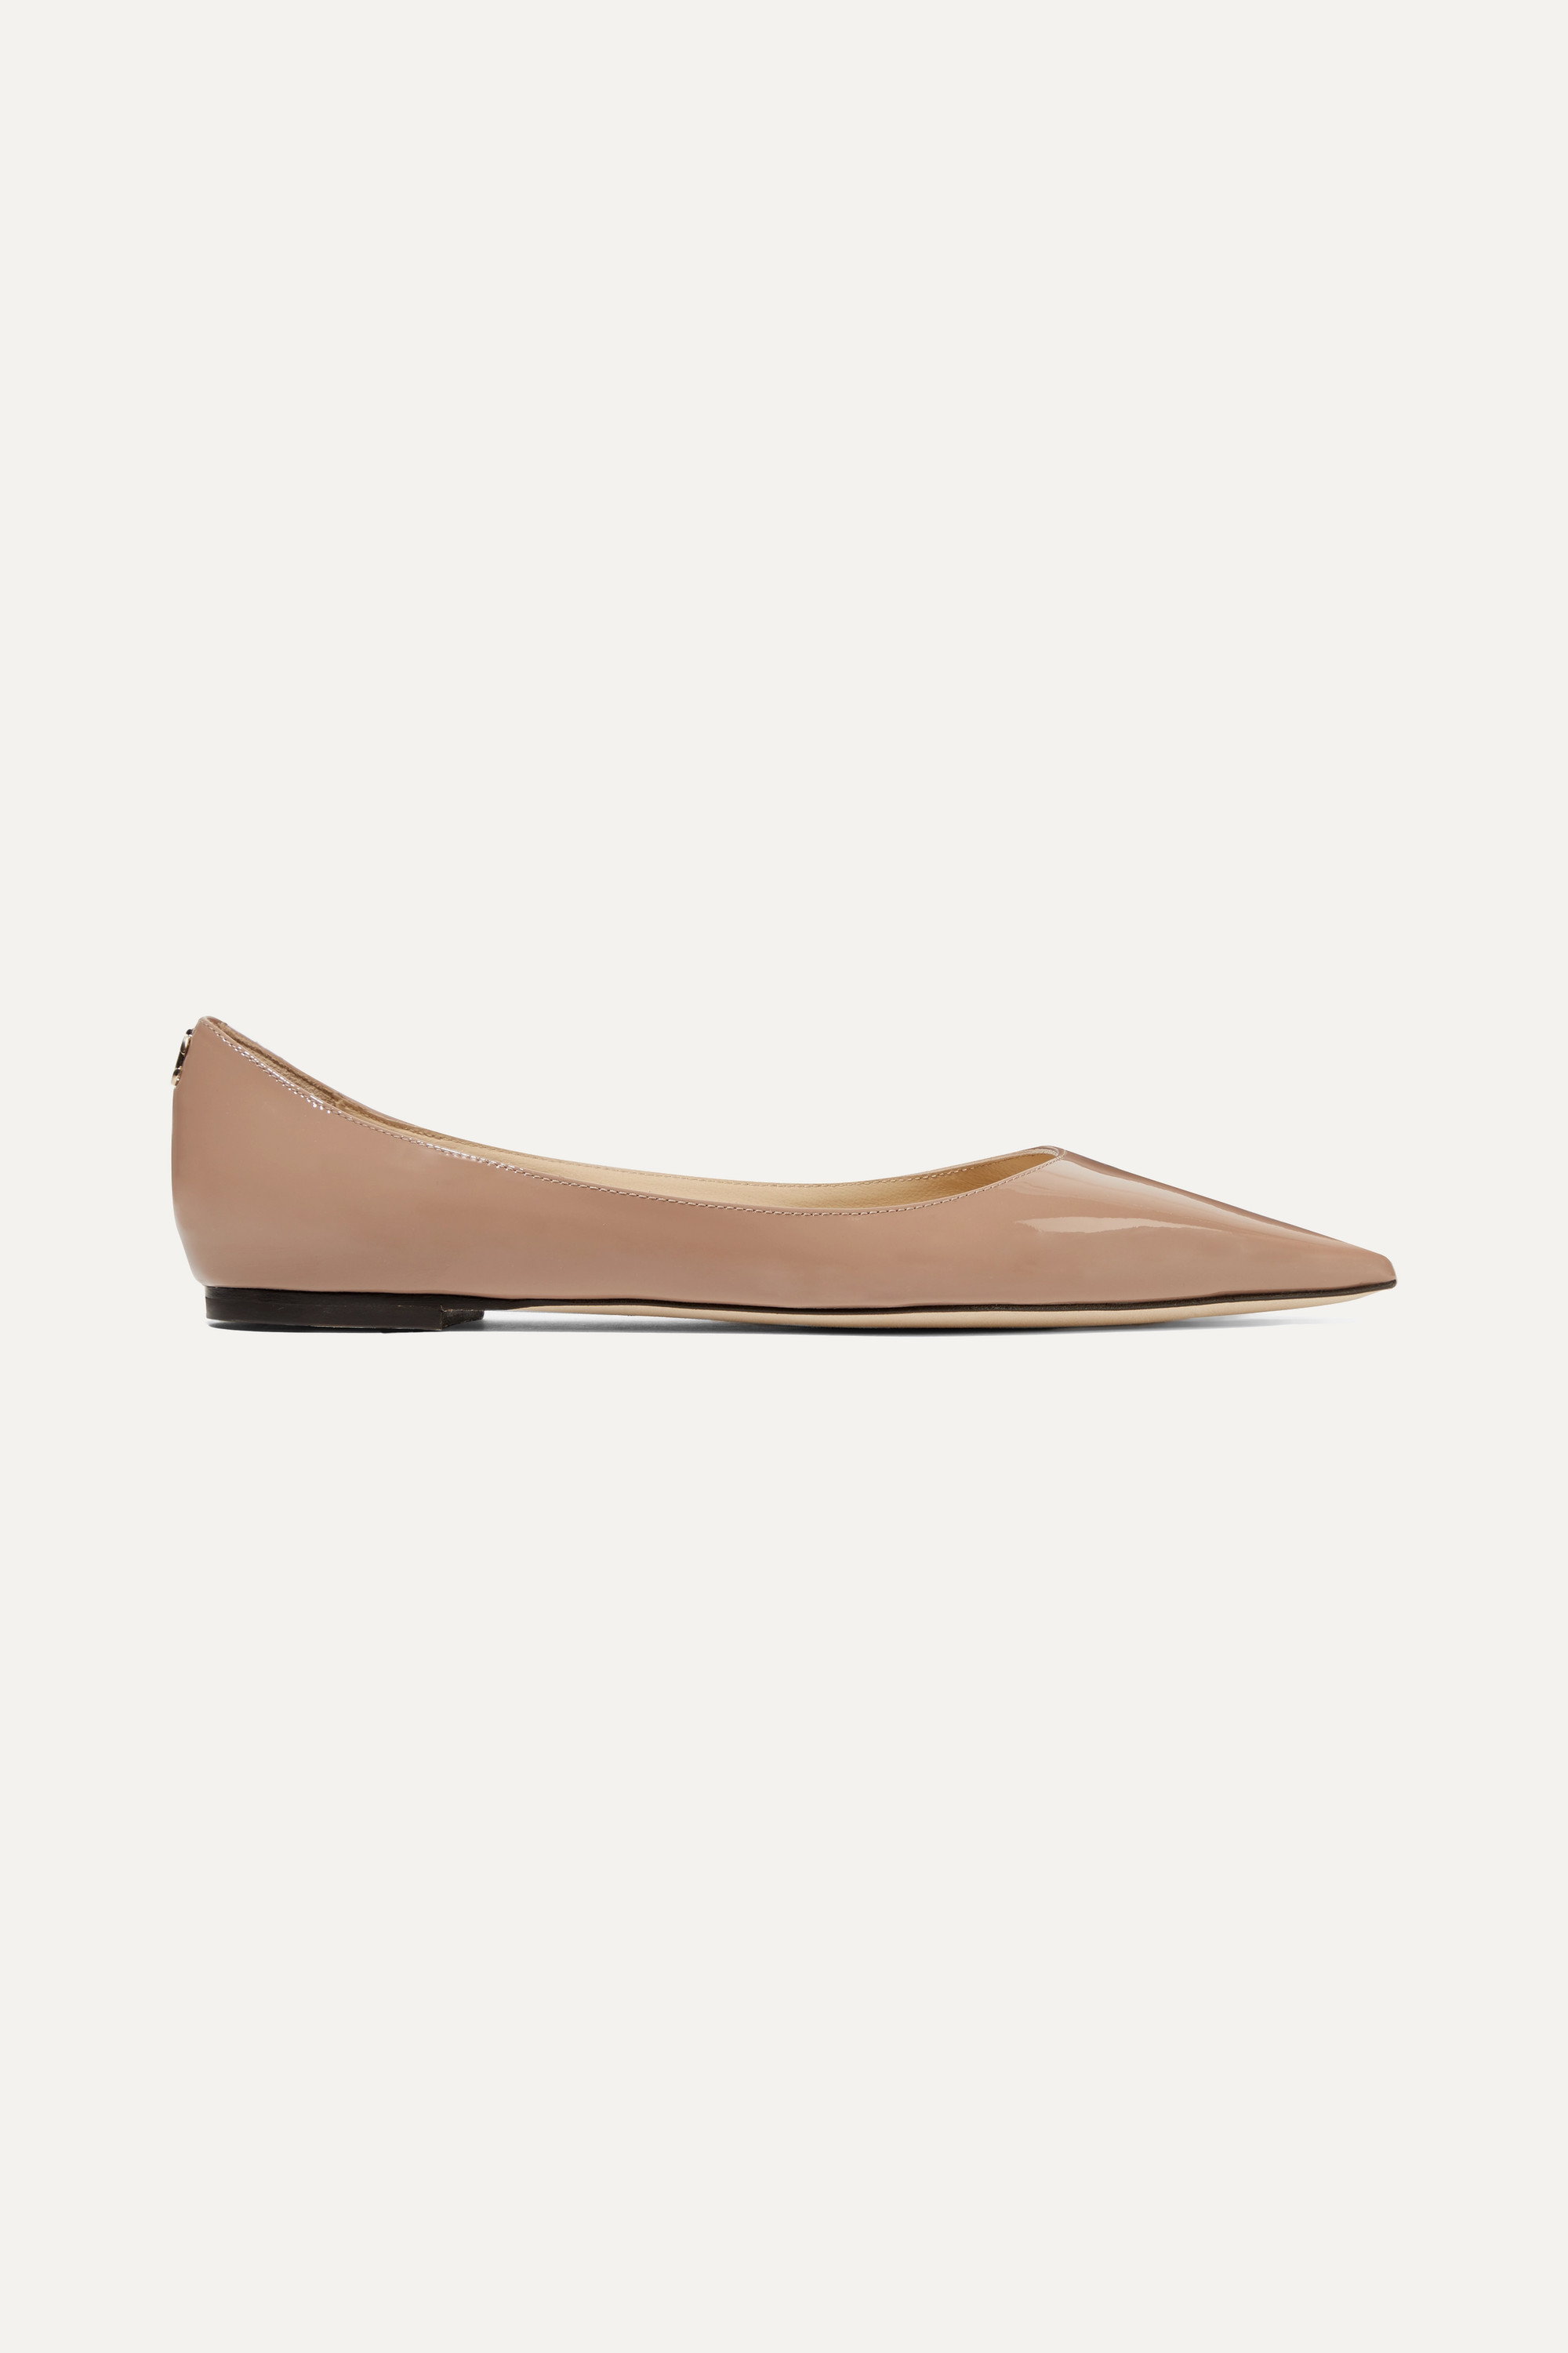 Jimmy Choo Love patent-leather point-toe flats